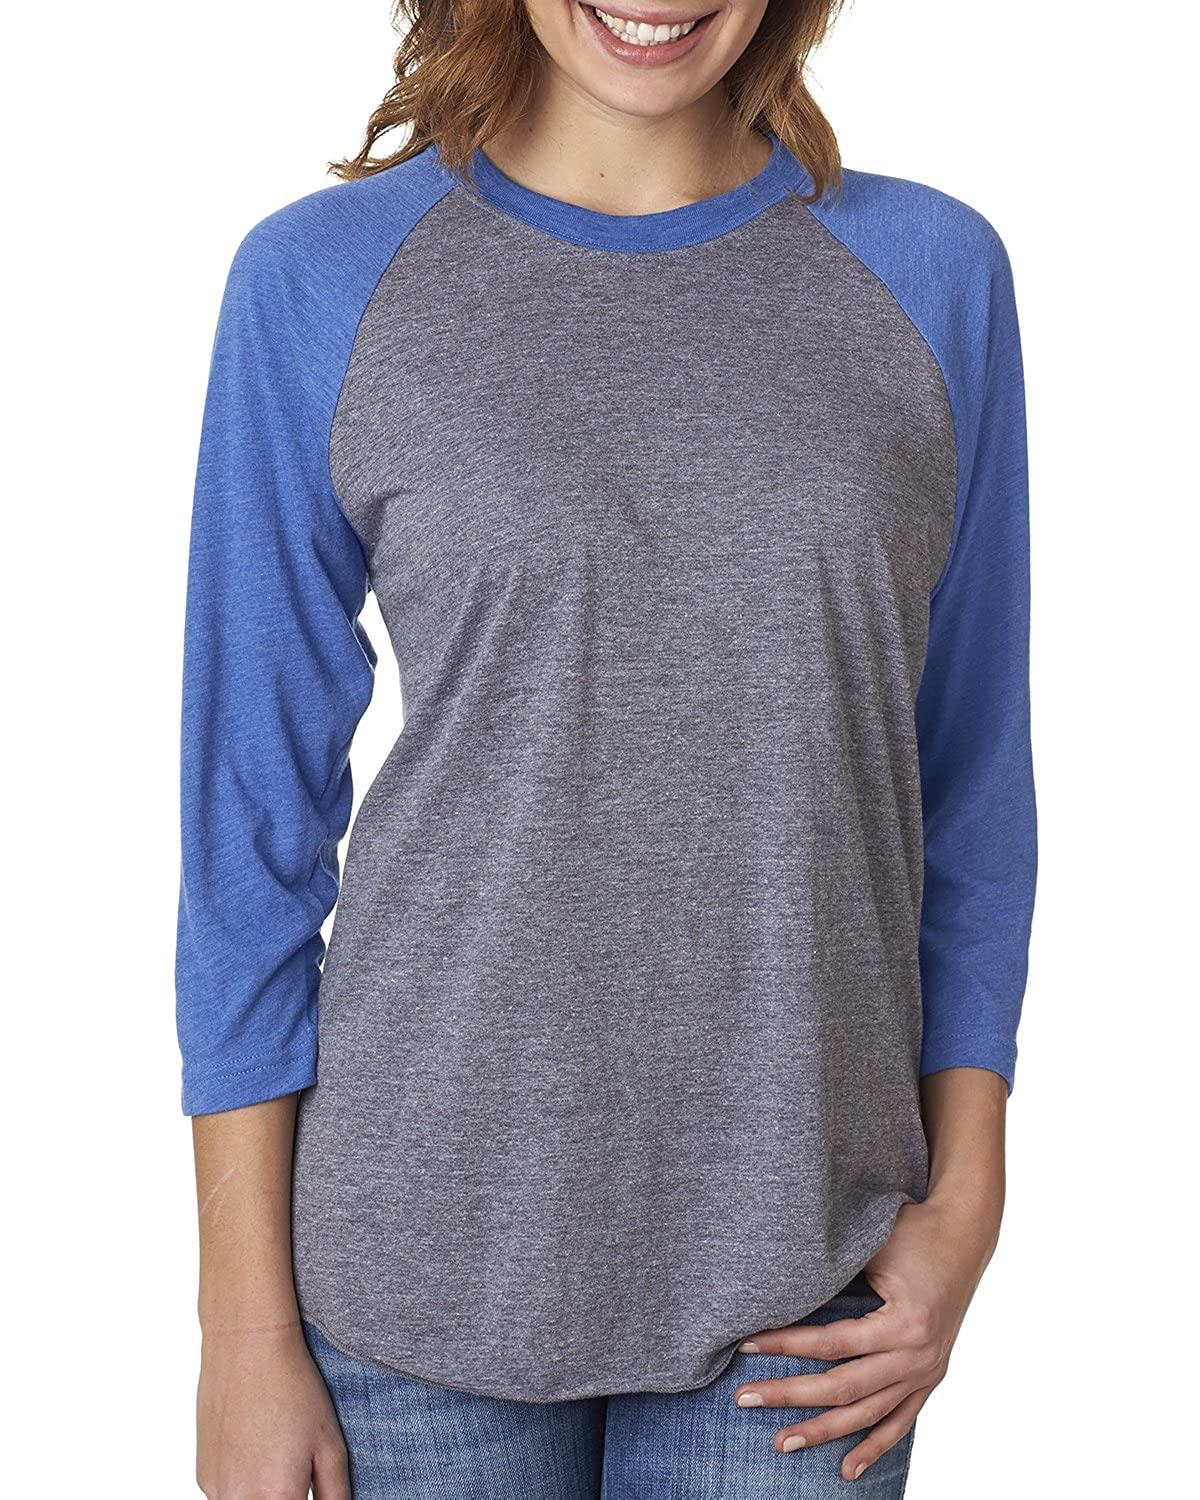 Next Level-Unisex Tri-Blend Three-Quarter Sleeve Raglan Tee-6051